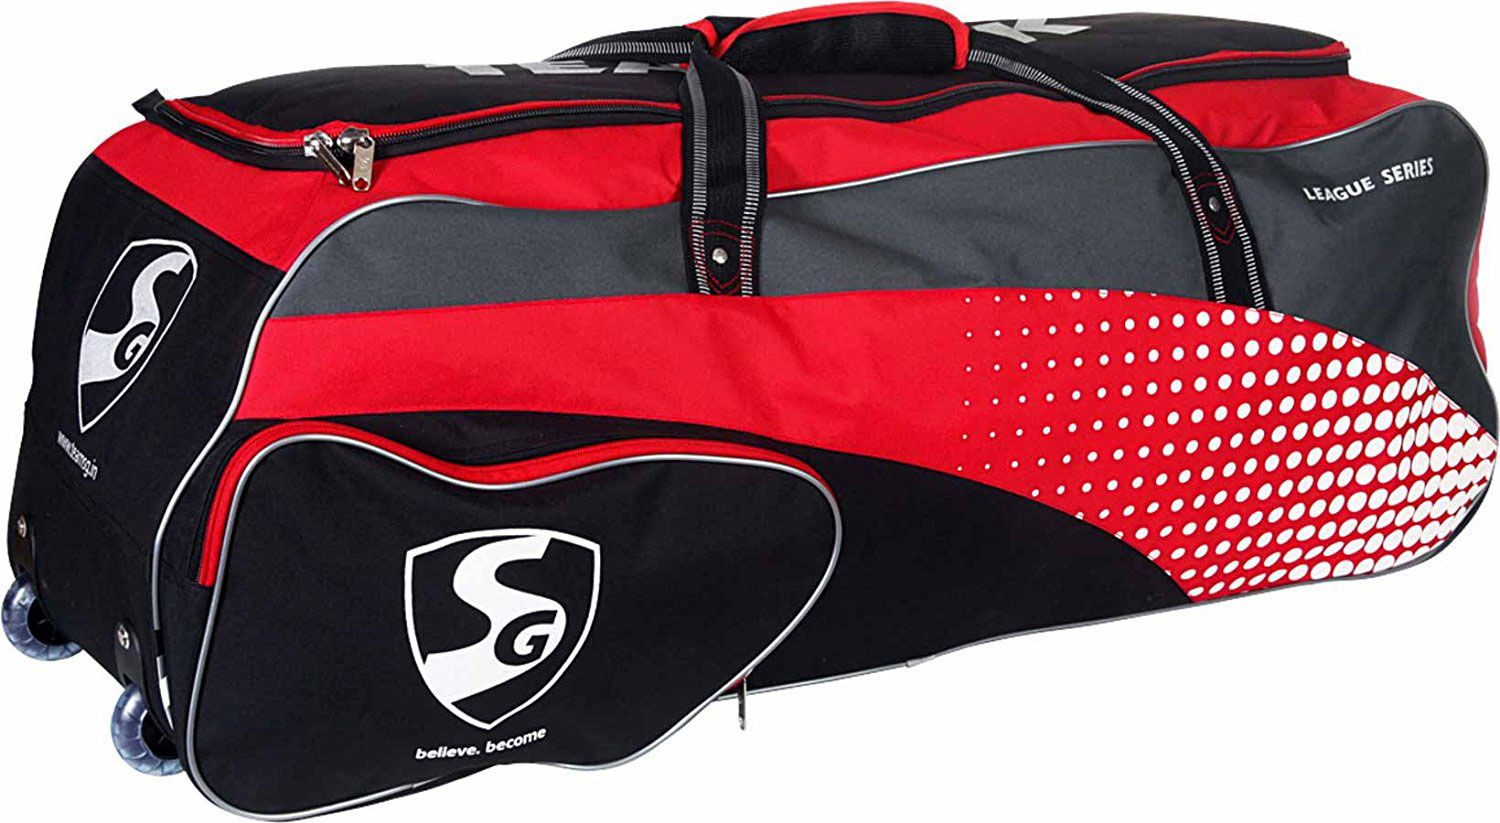 0aef965a99a0 SG Teampak Kit Bag  Buy Online at Best Price on Snapdeal